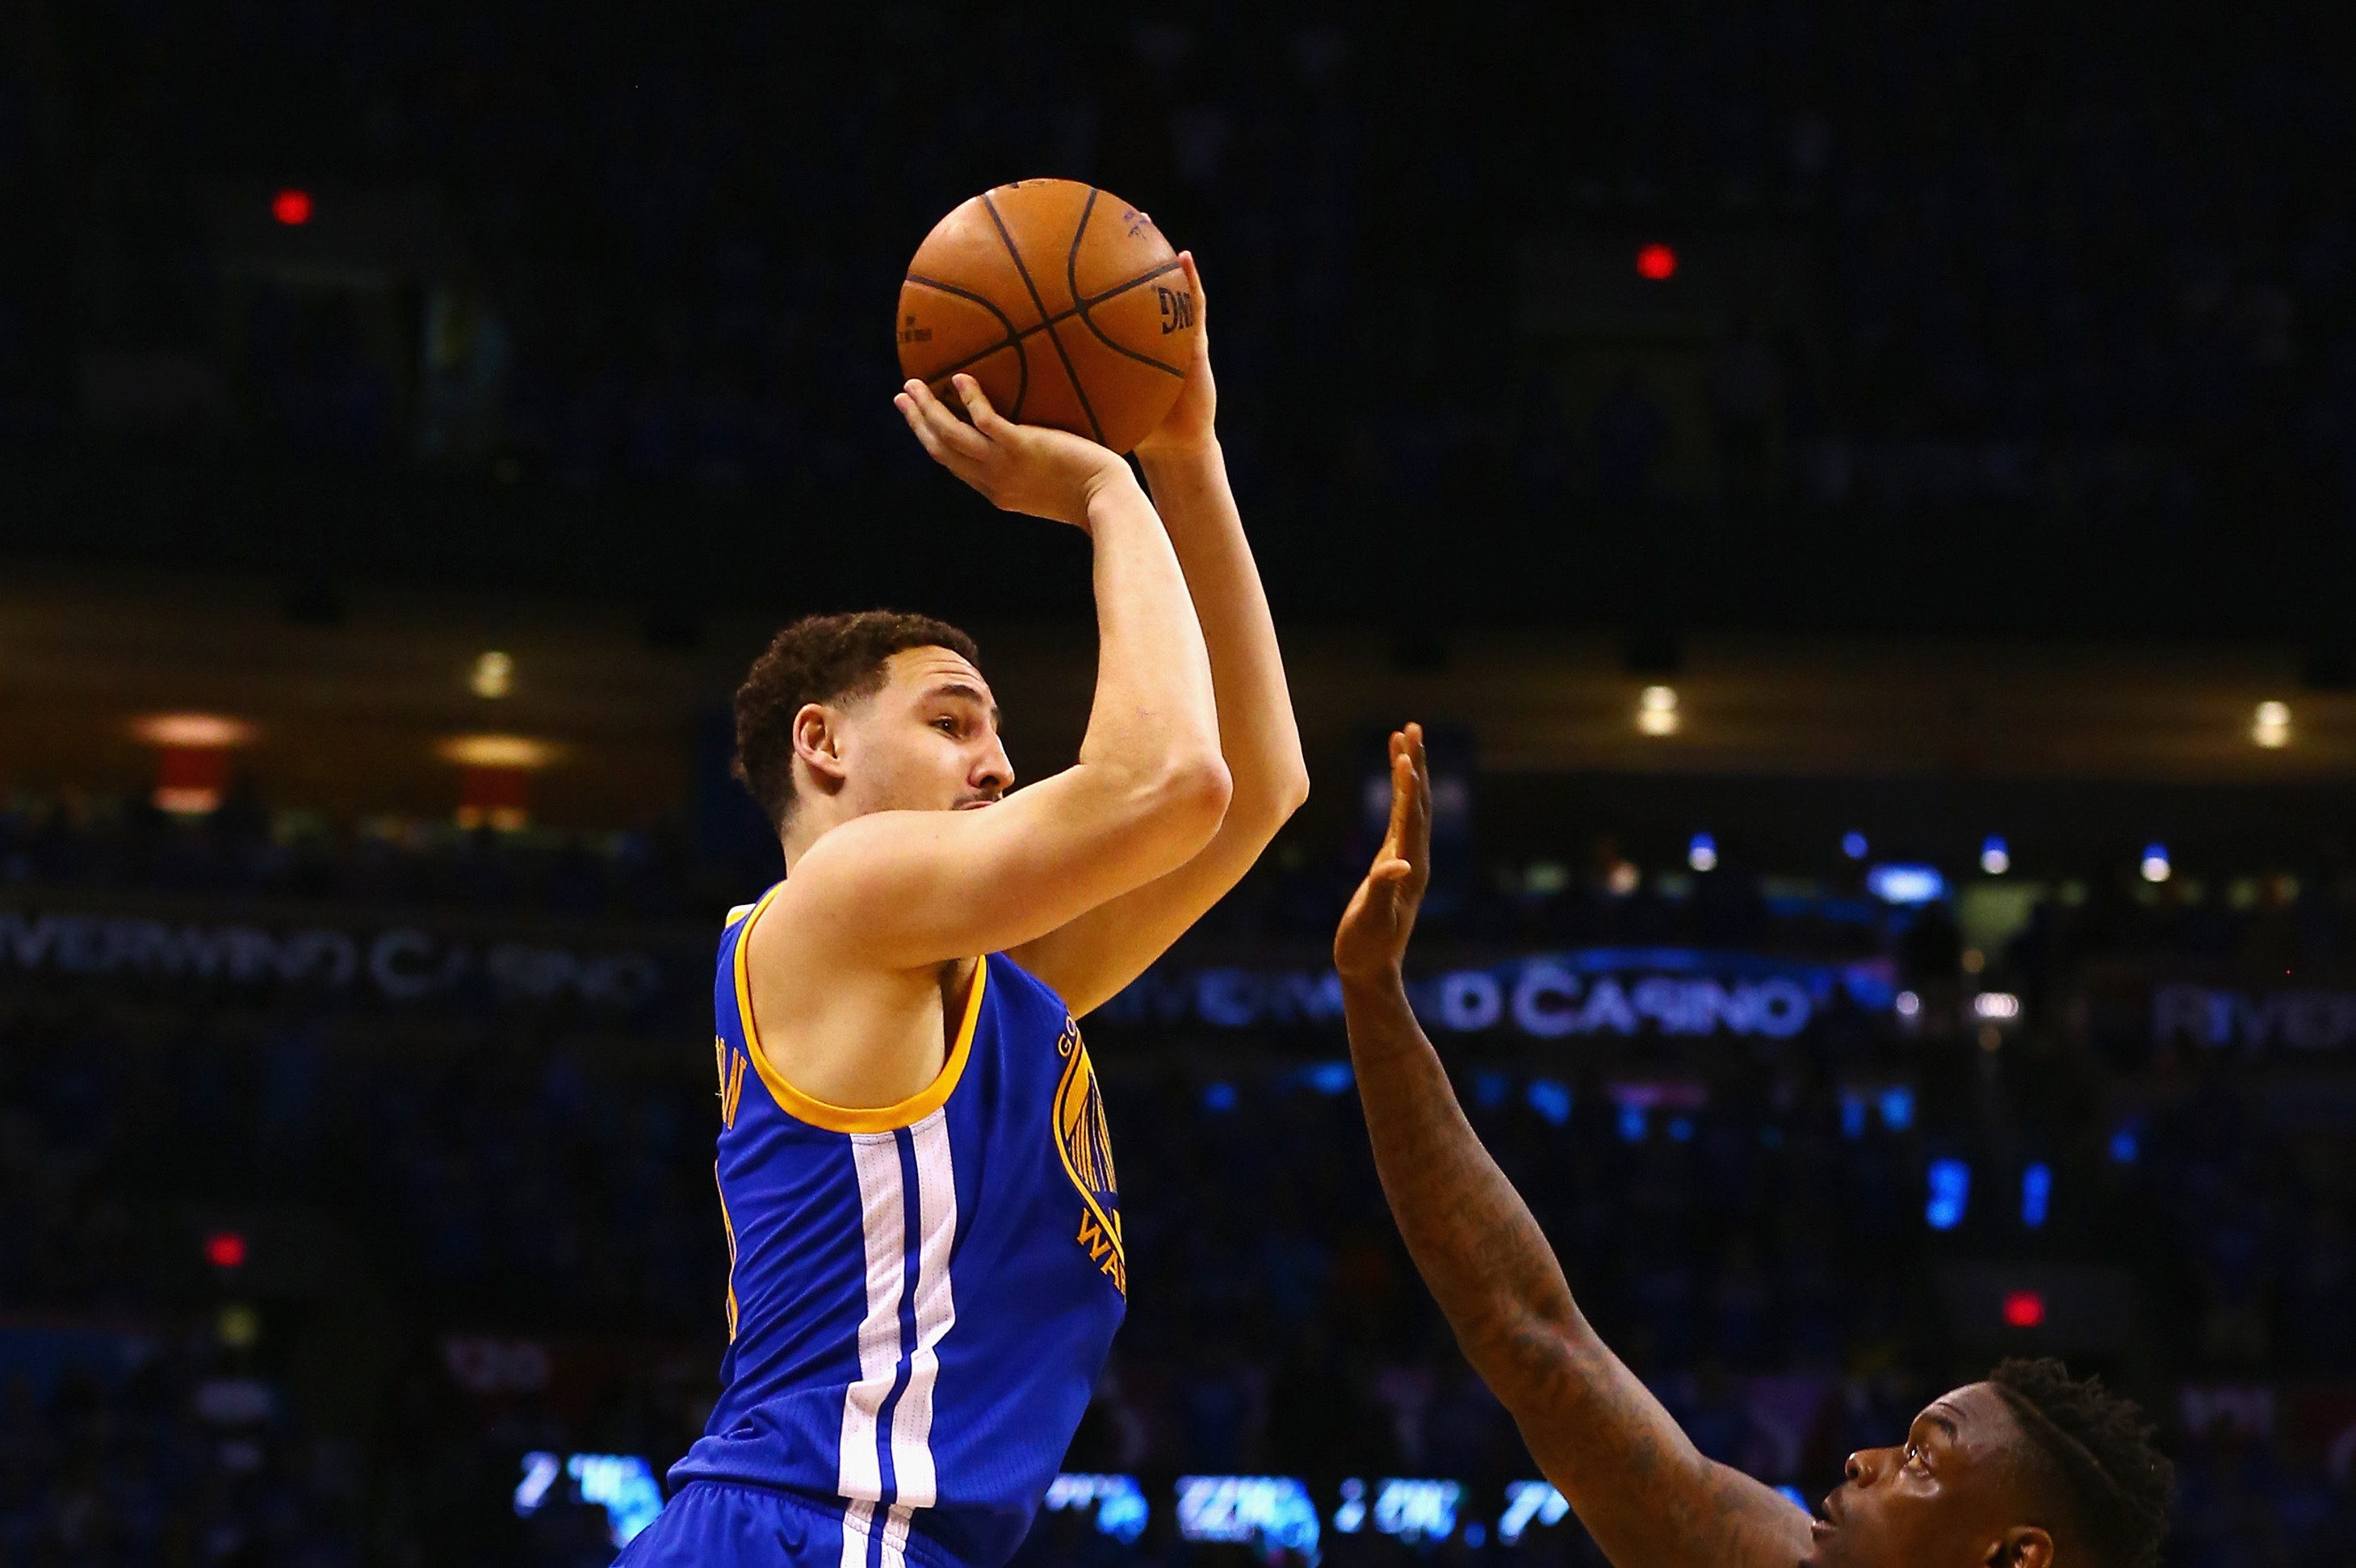 41 punti per Klay Thompson